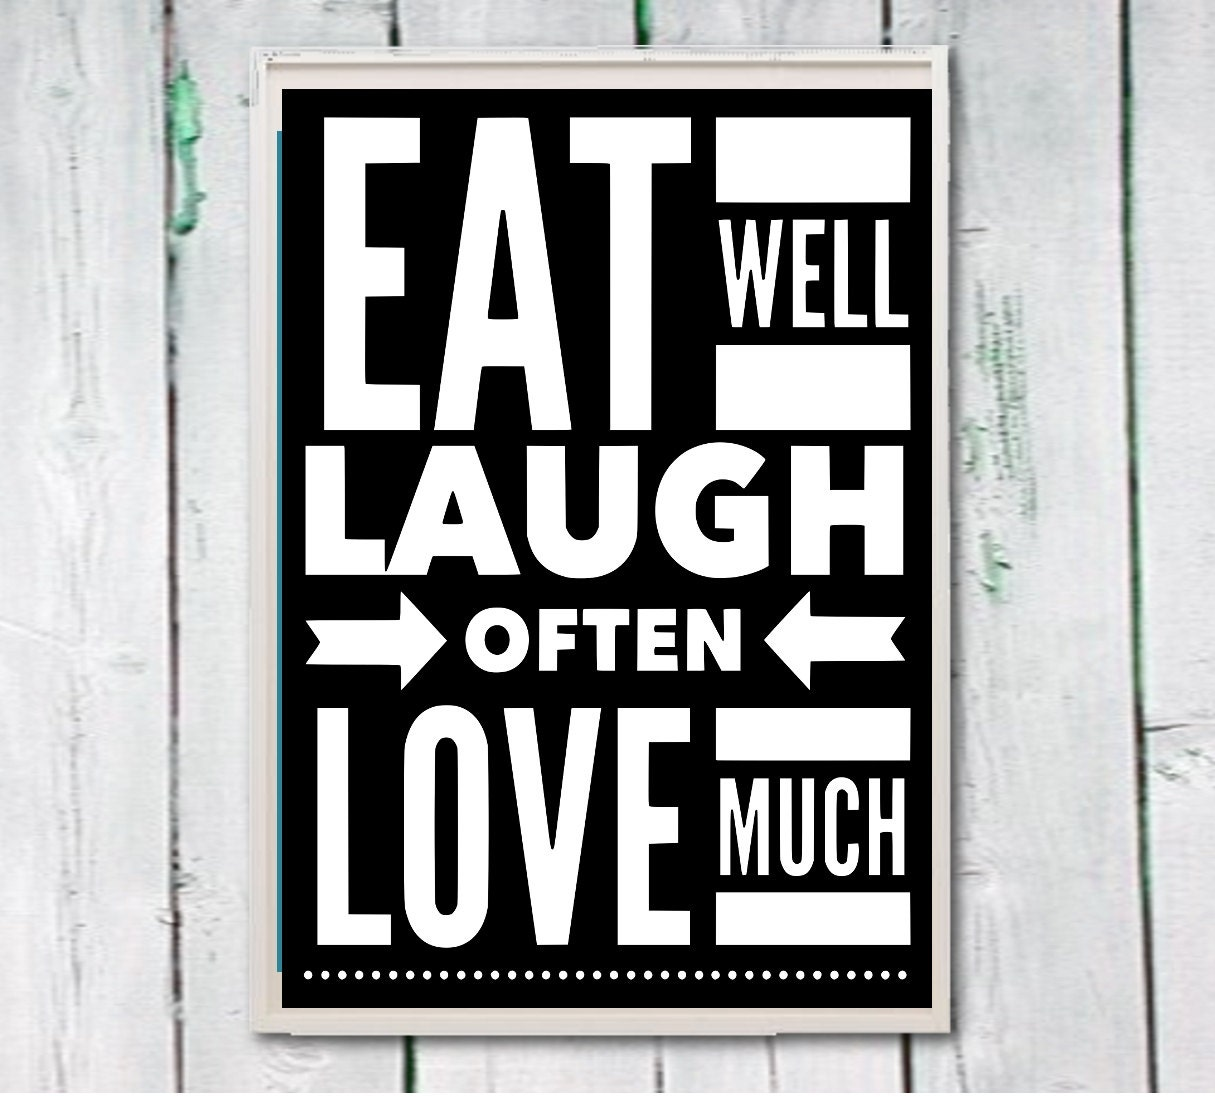 kitchen art printable eat wel laugh often love much quote. Black Bedroom Furniture Sets. Home Design Ideas